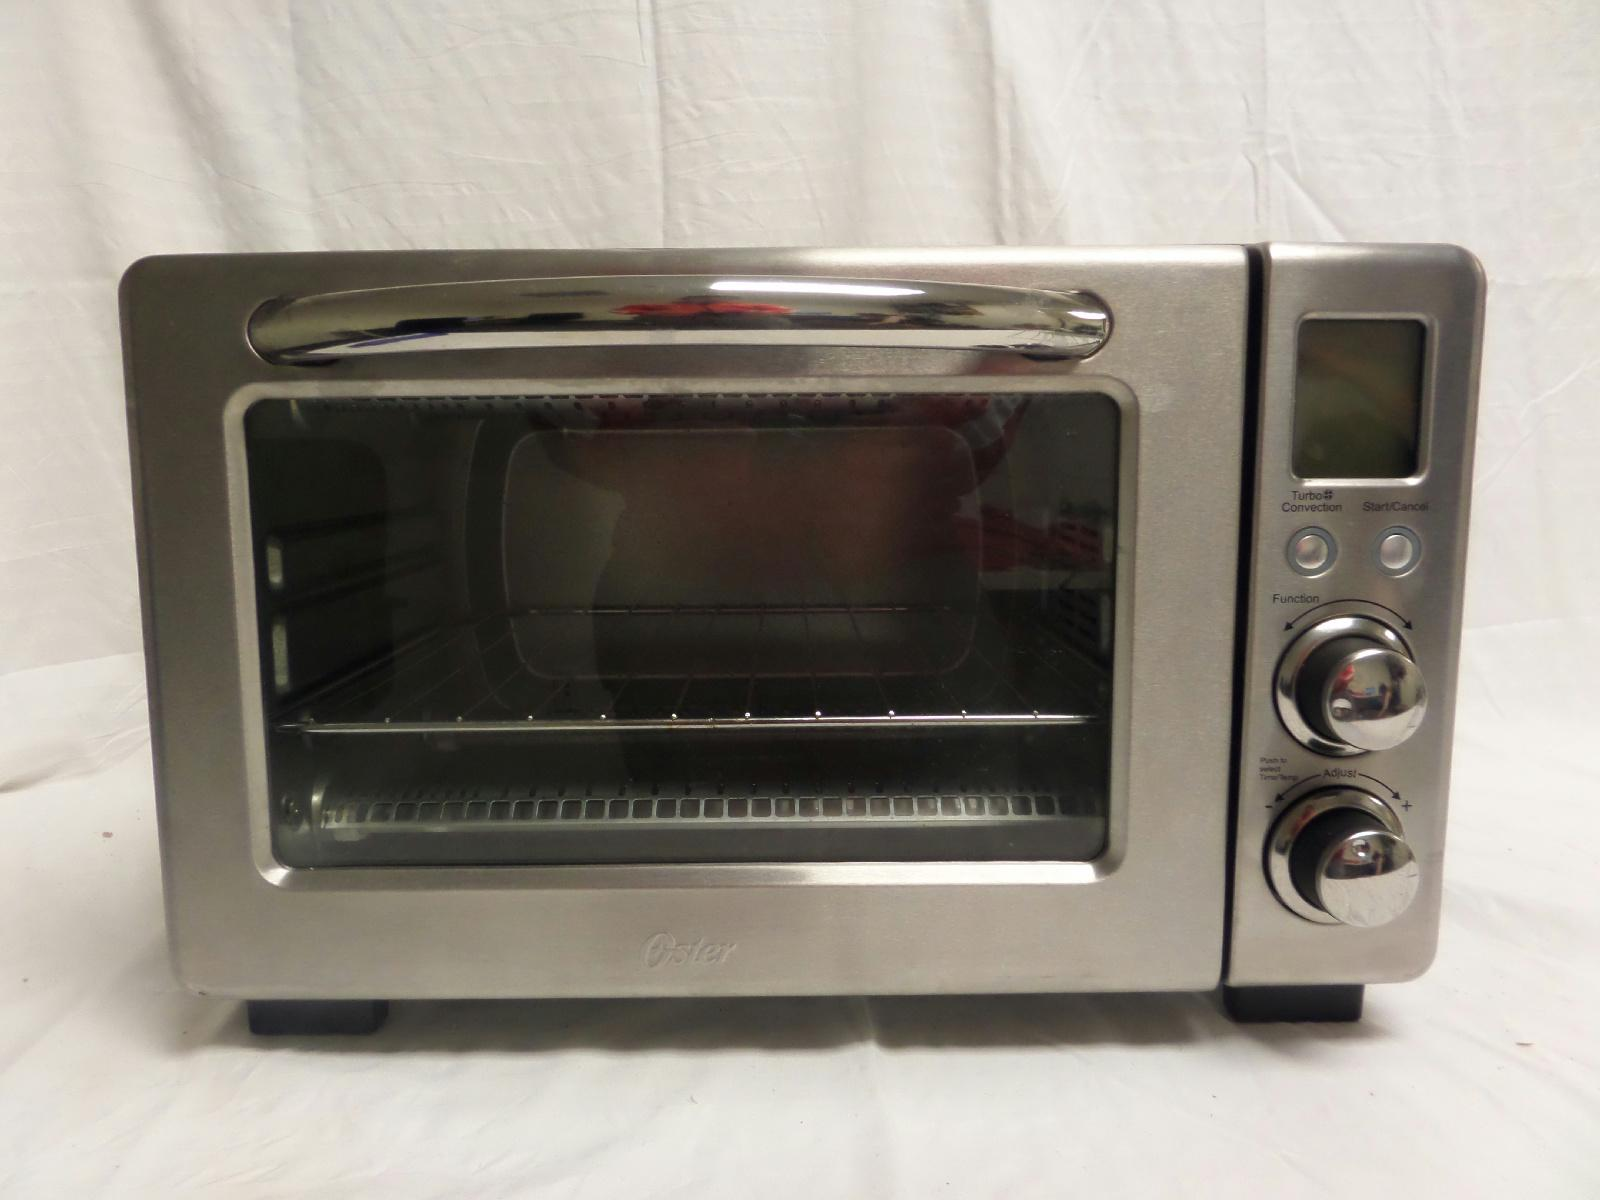 Countertop Toaster Oven : ... about Oster TSSTTVDG01-A Digital Countertop Toaster Ovens Silver